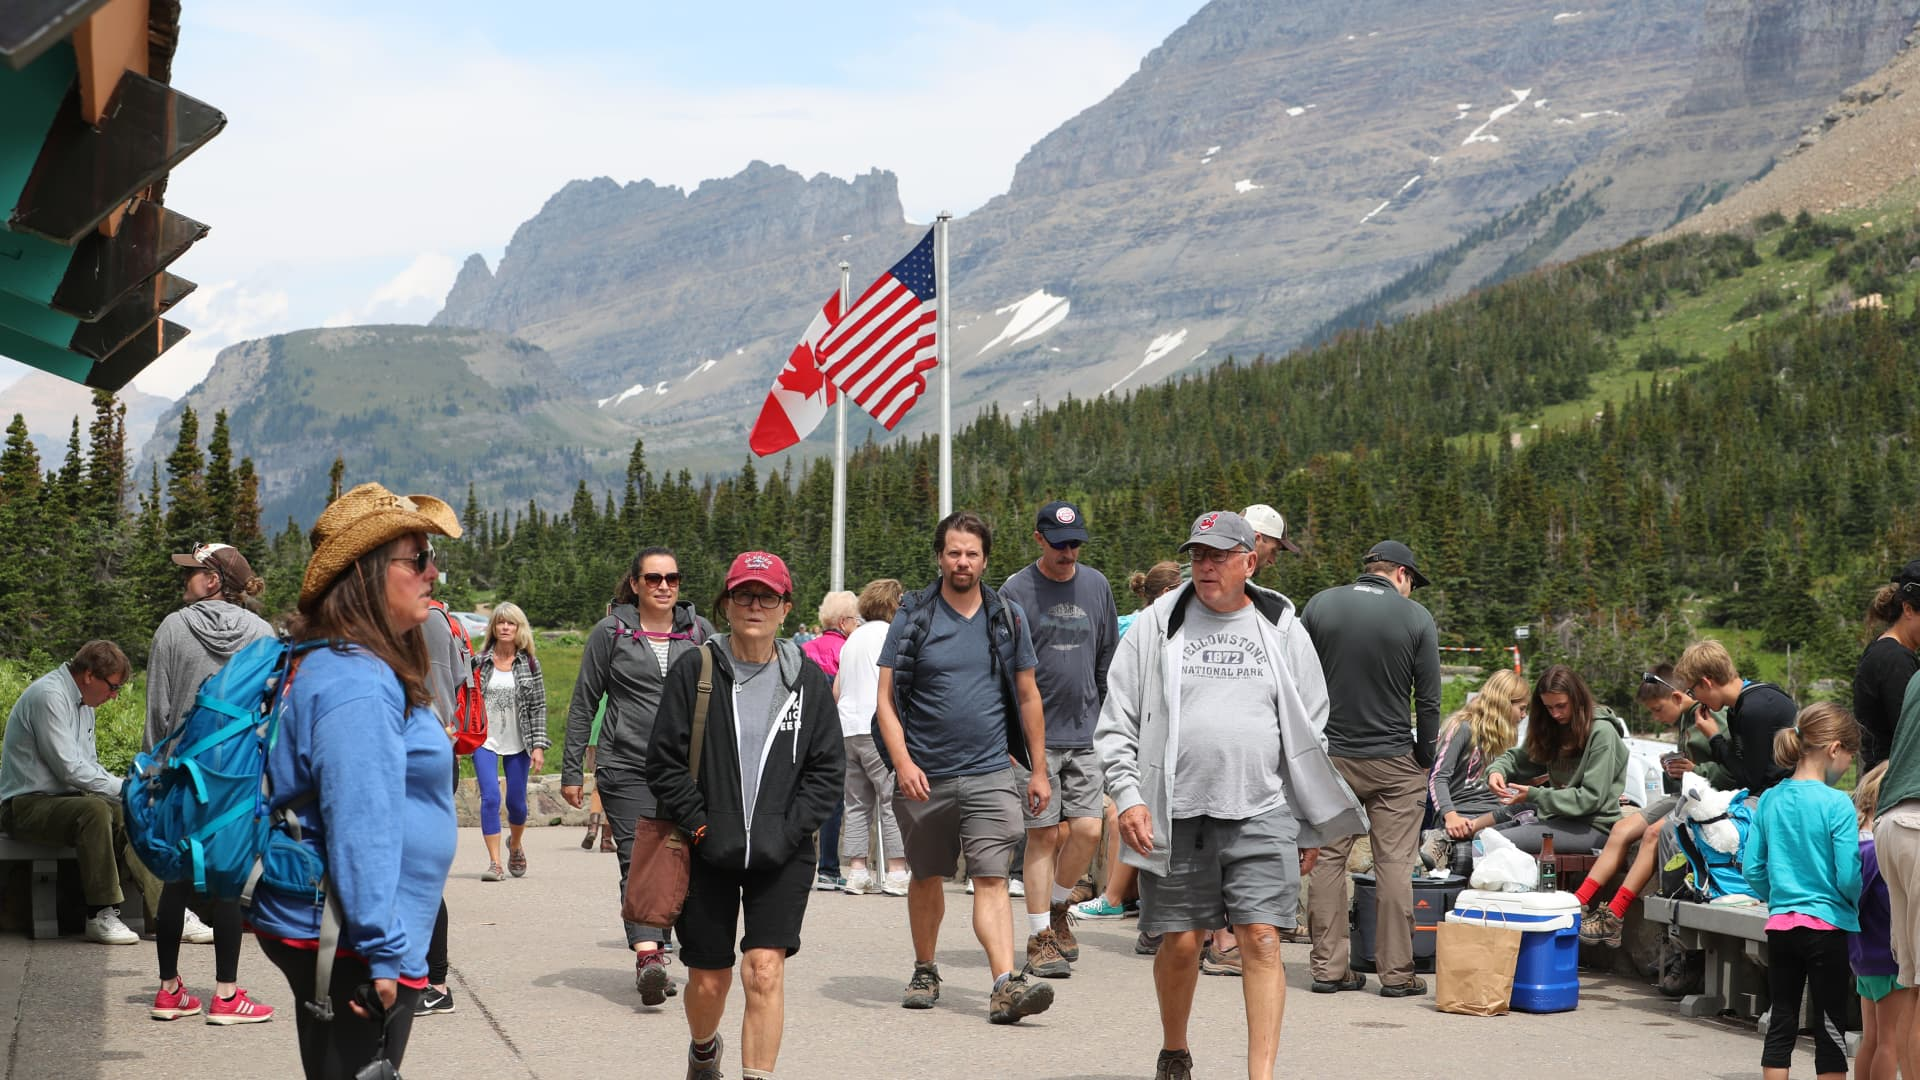 Visitors walk around the Logan Pass Visitor Center in Glacier National Park on July 26, 2018 in West Glacier, Montana.